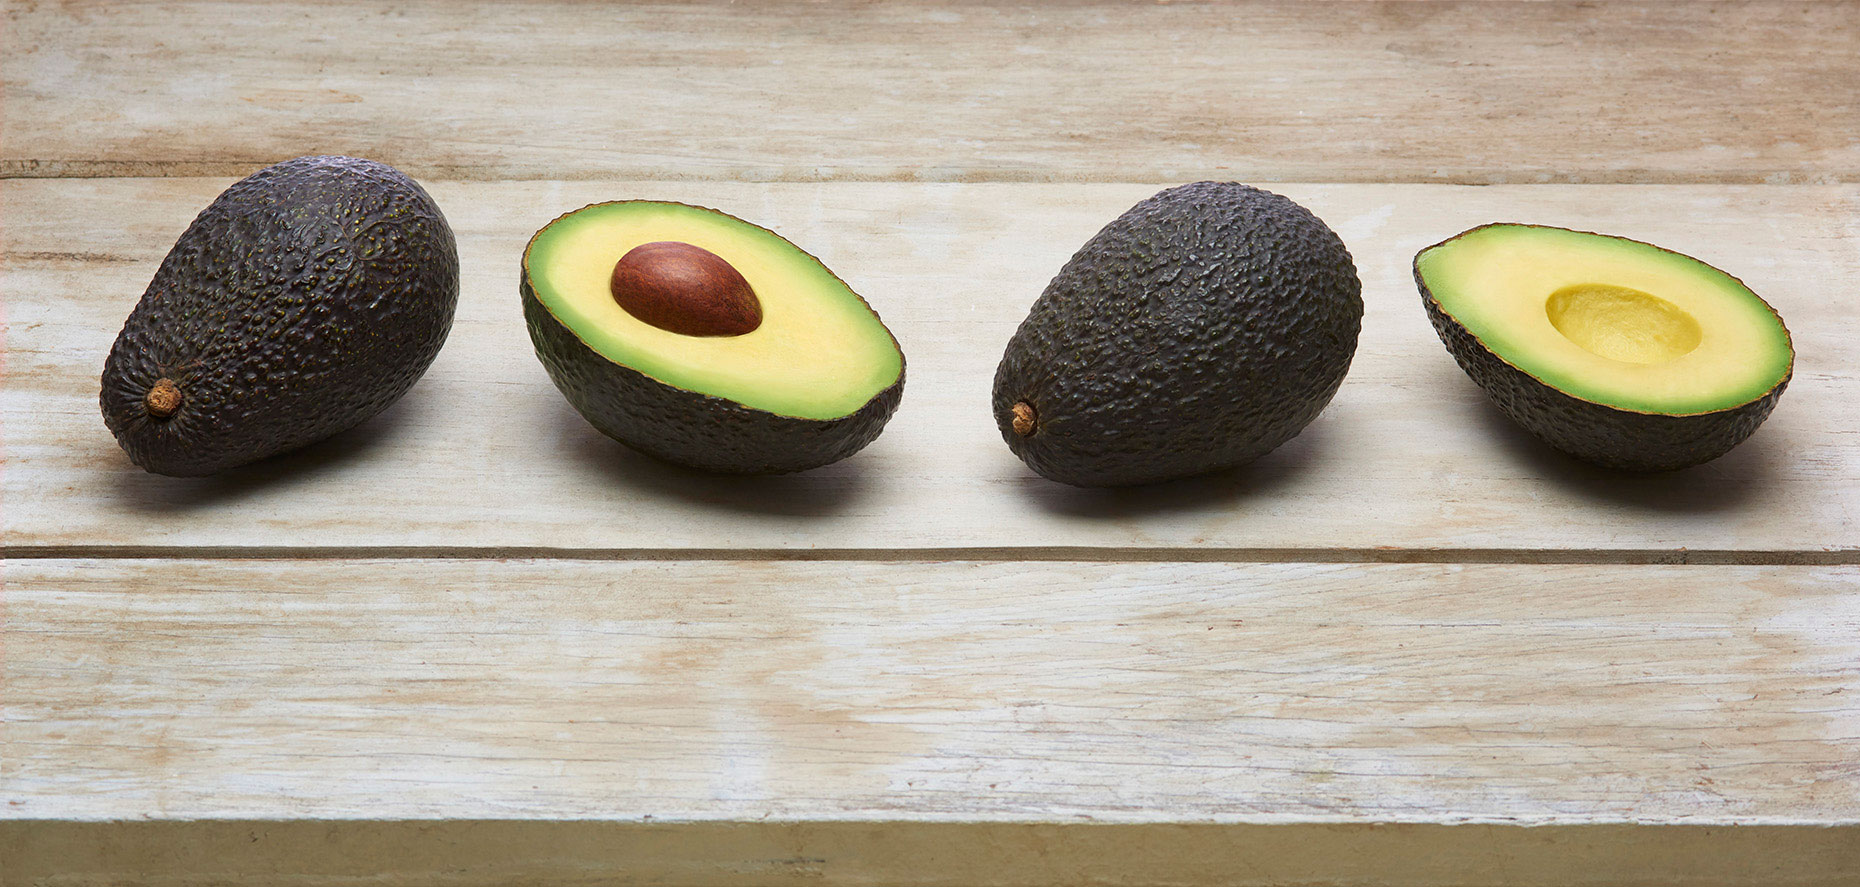 Two-whole-and-one-cut-hass-avocad-on-rustic-white-wood-table-top-by-Joe-Atlas-food-photographer.